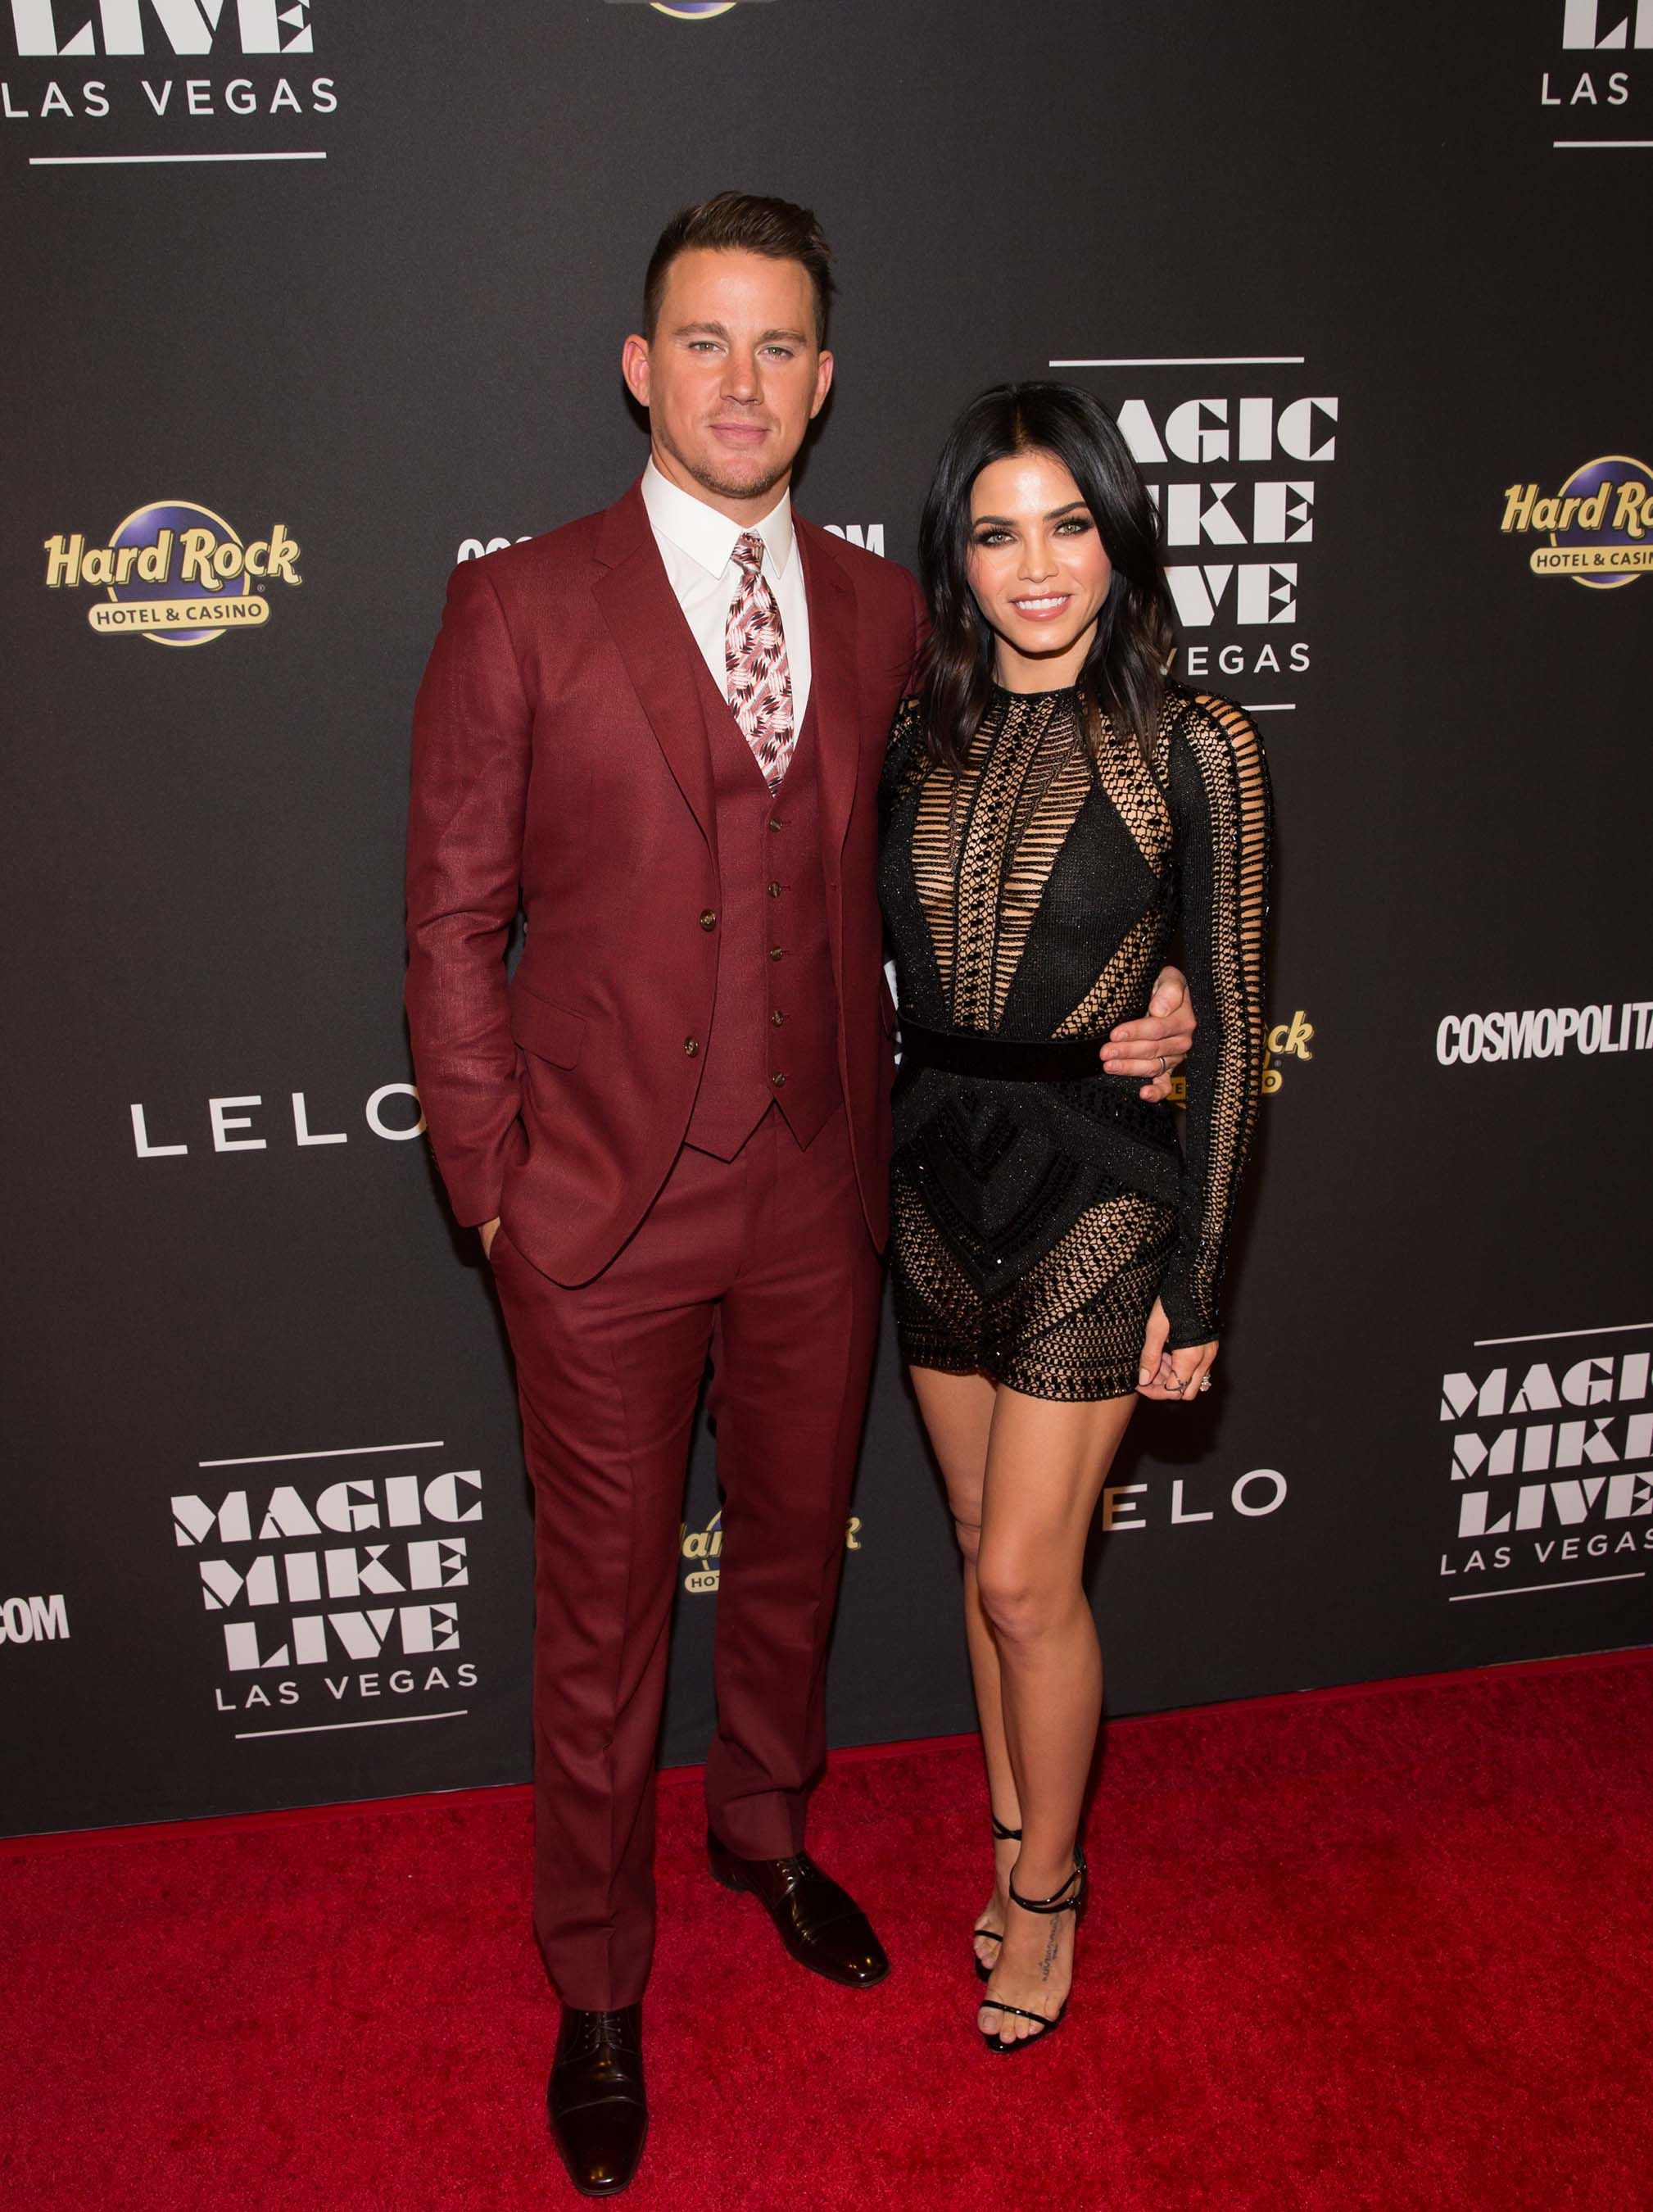 Channing Tatum and Jenna Dewan-Tatum at Opening Night of MAGIC MIKE LIVE  LAS VEGAS